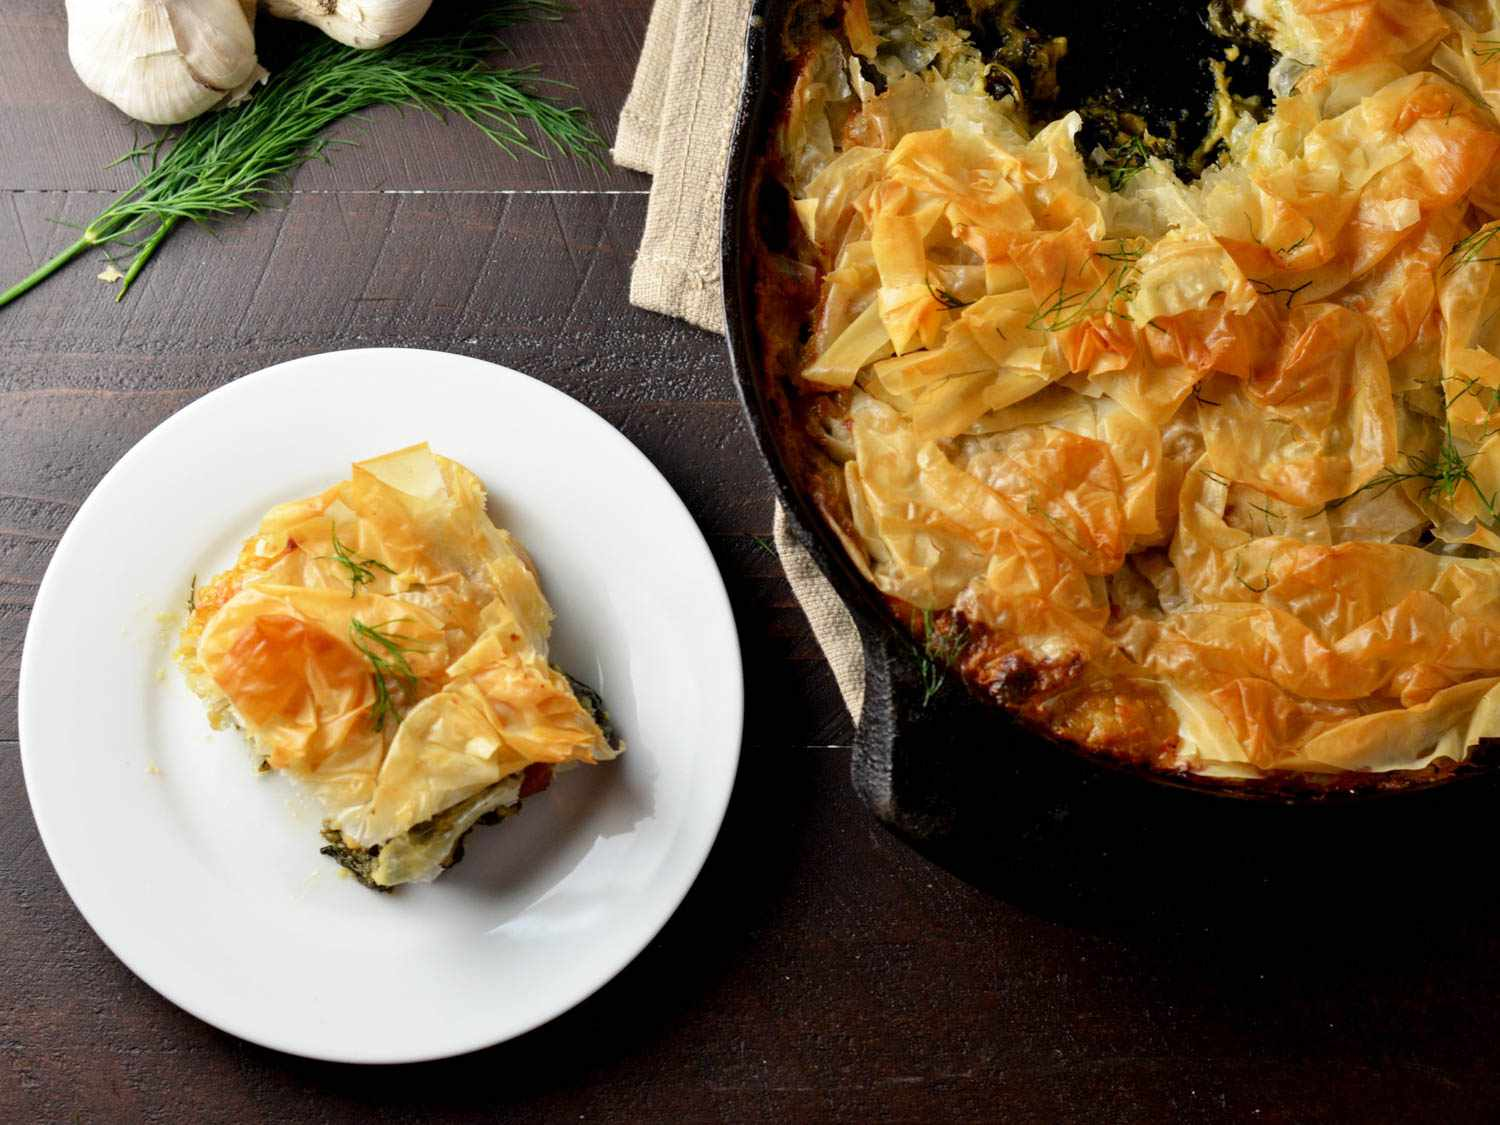 Creamy Garlic Chicken Spanakopita Skillet in a skillet, with a serving on a white plate next to the skillet.